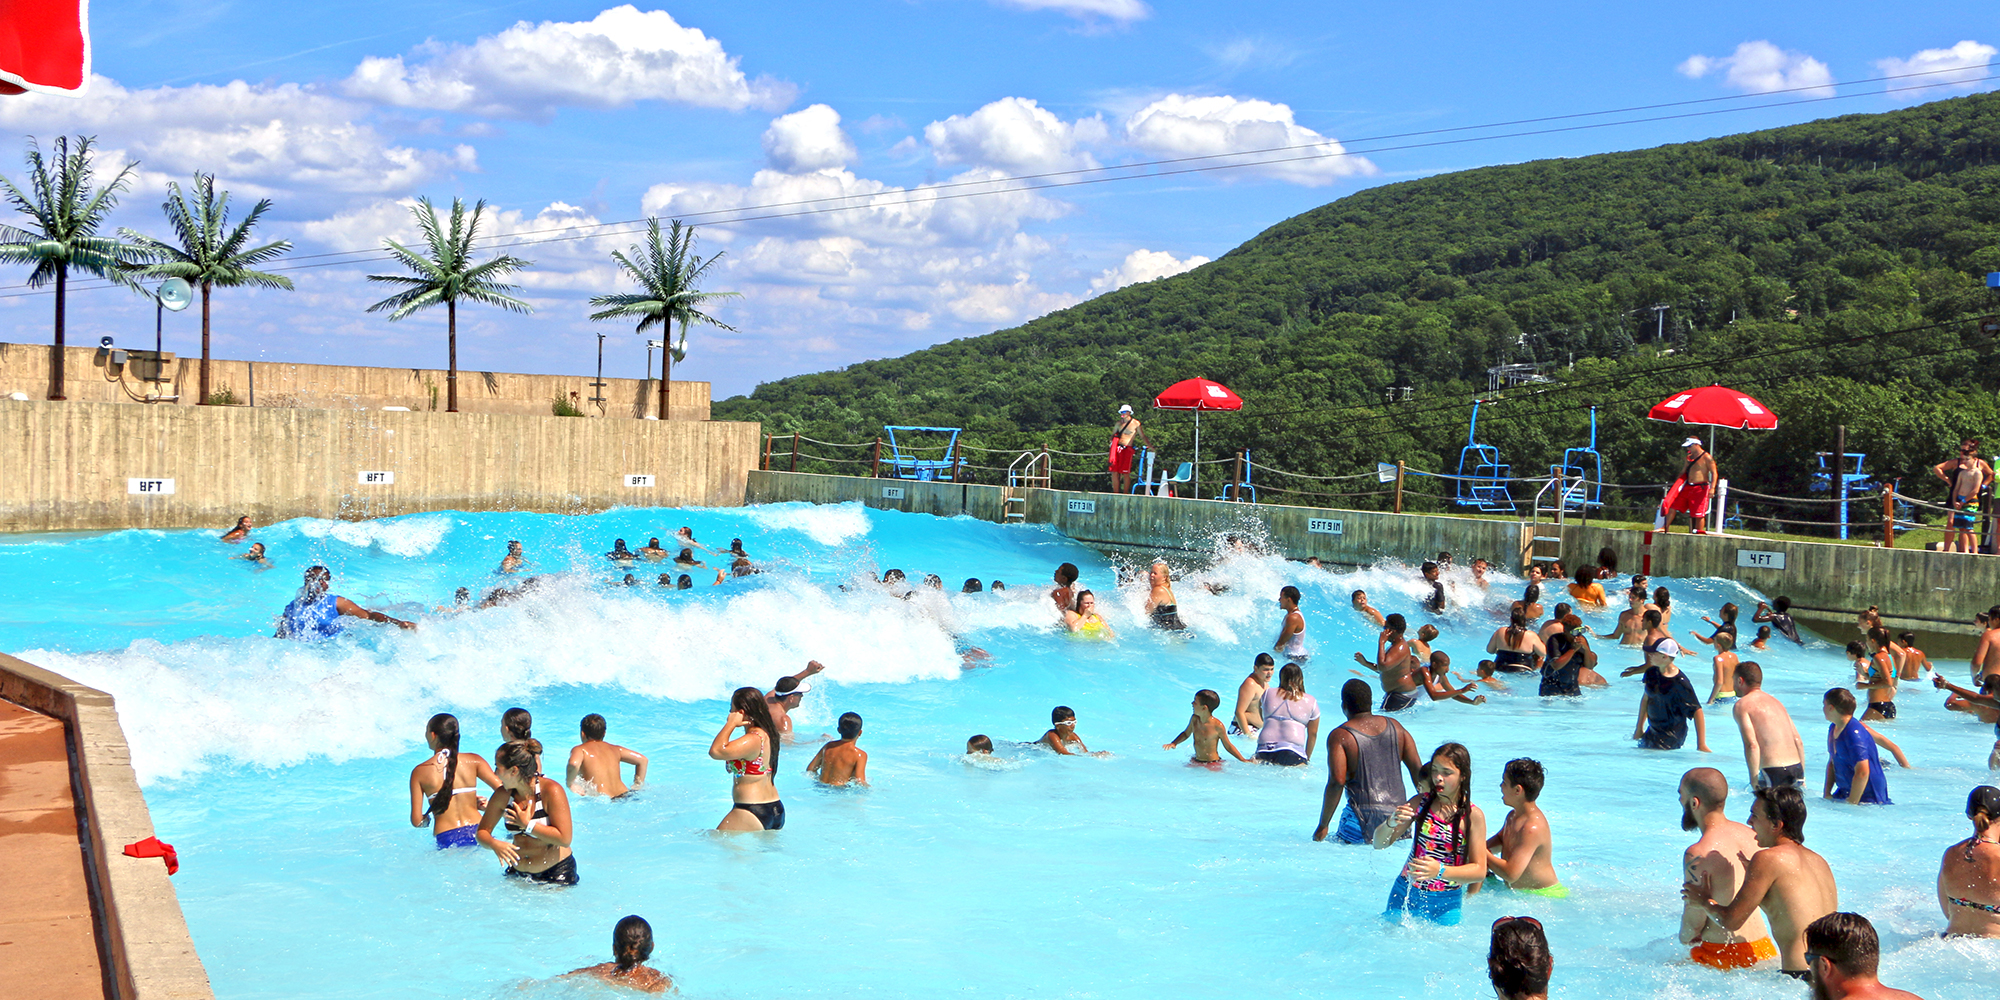 Mountain Water park